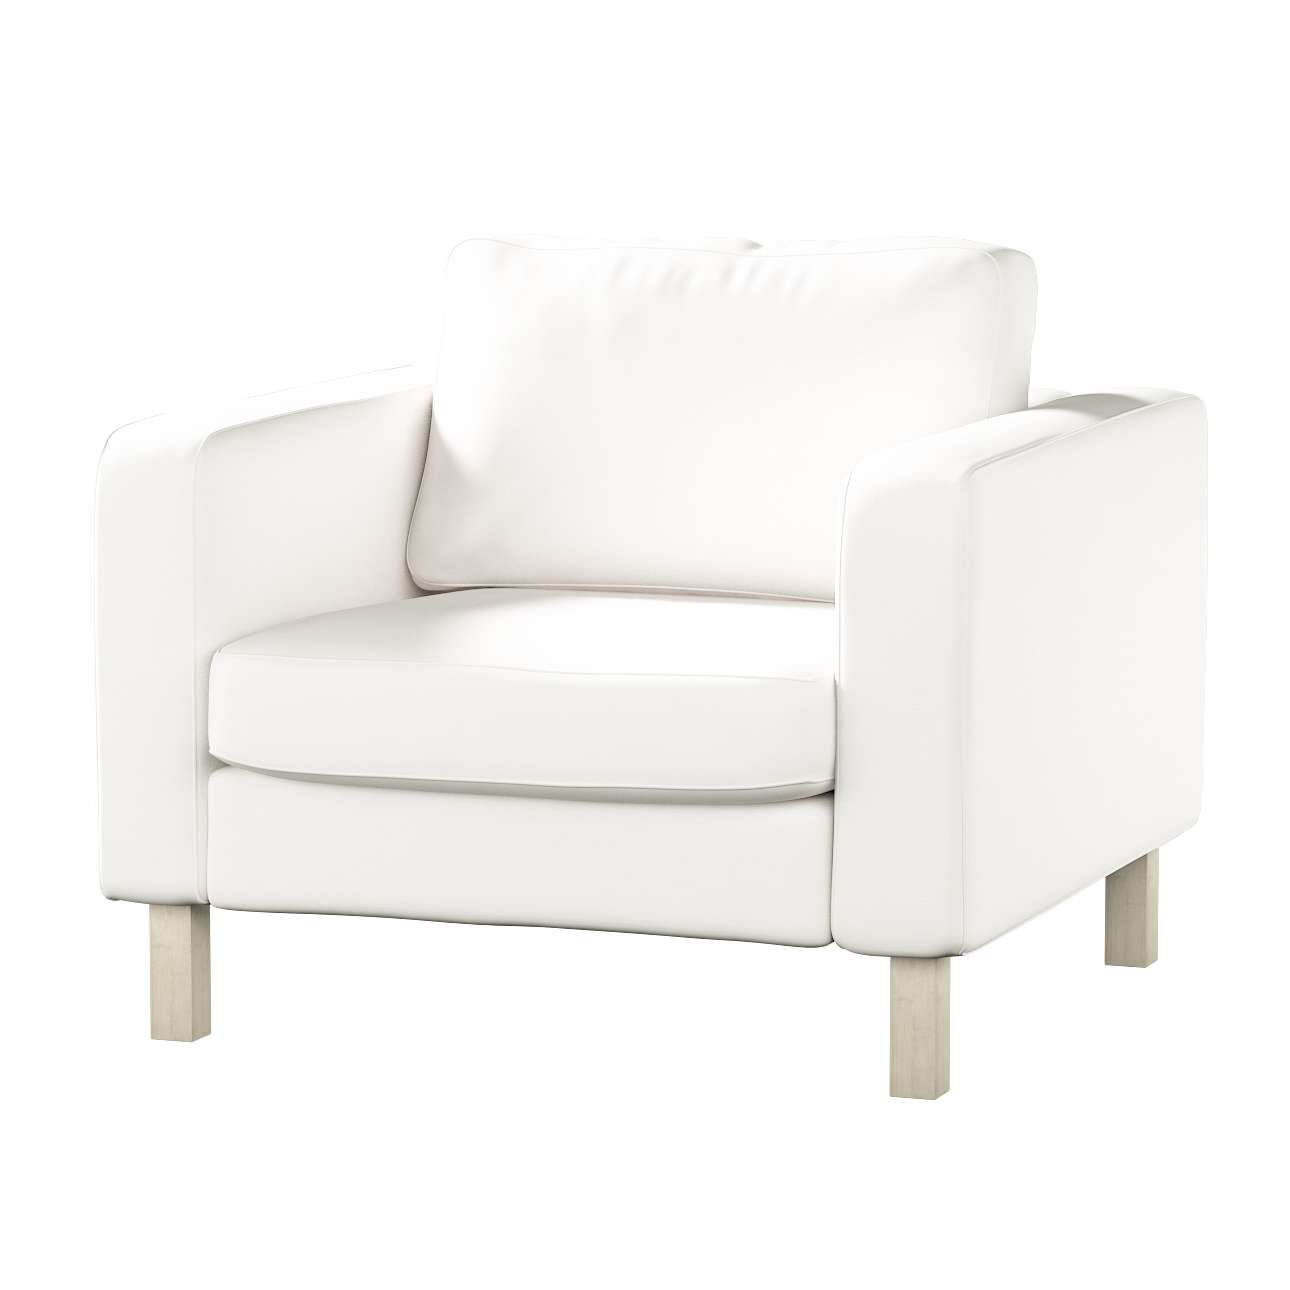 Karlstad armchair cover Karlstad armchair cover in collection Cotton Panama, fabric: 702-34